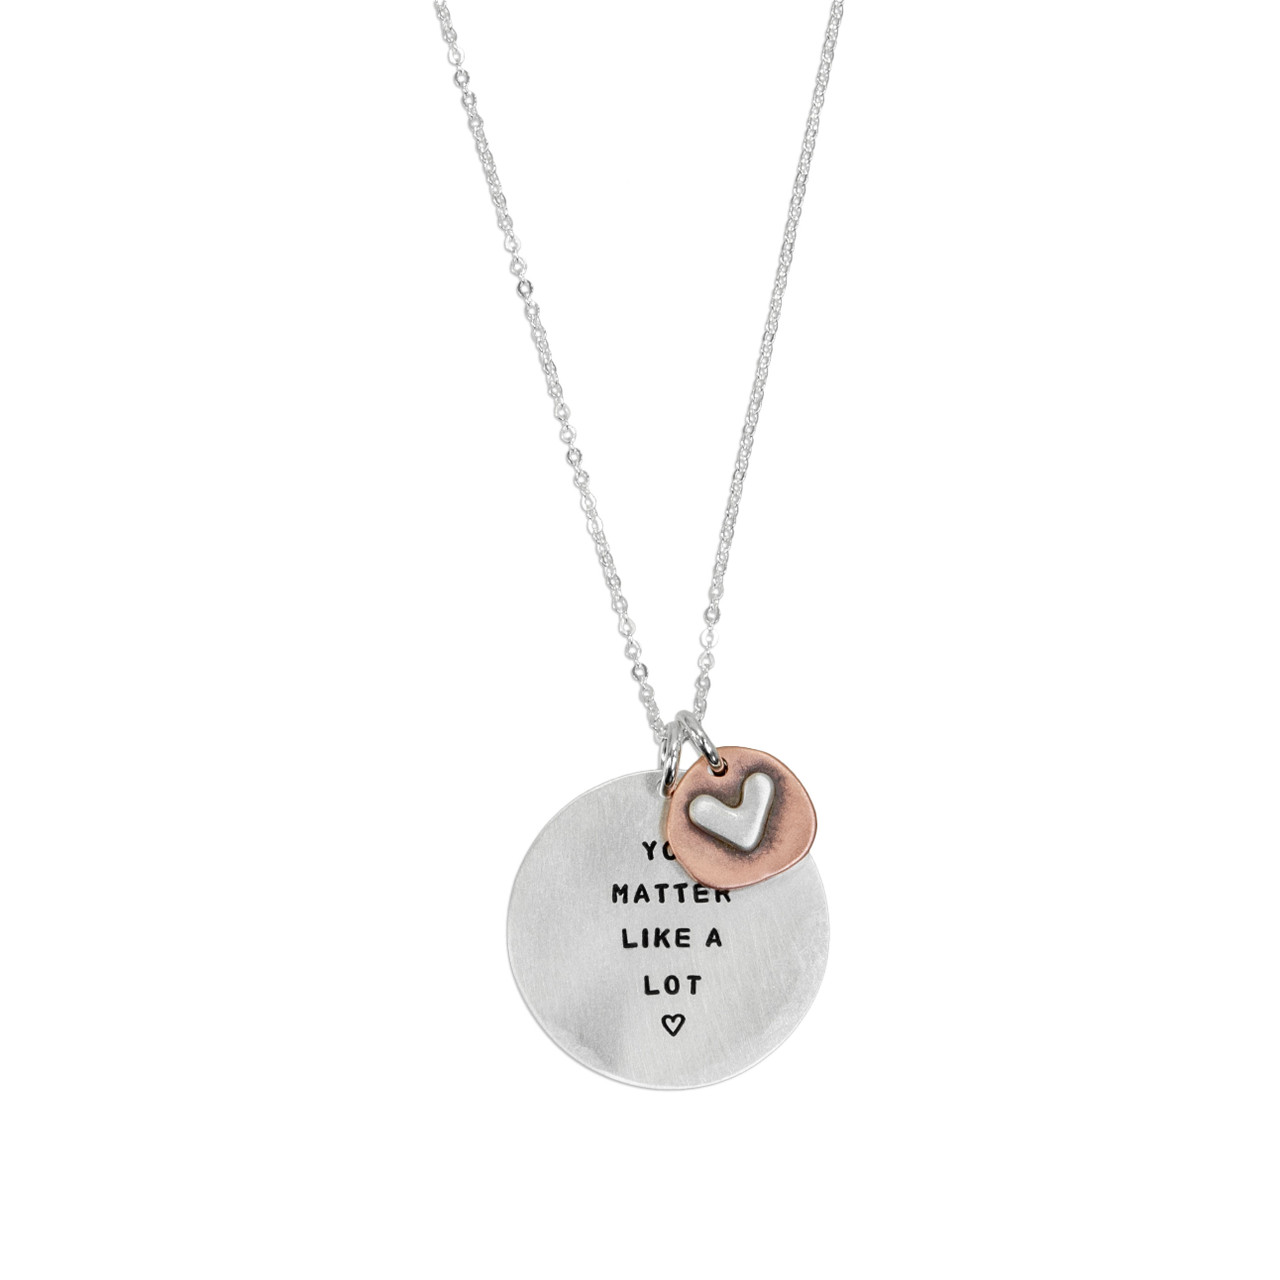 Memorial silver hand stamped necklace shown on white, with a copper and silver heart